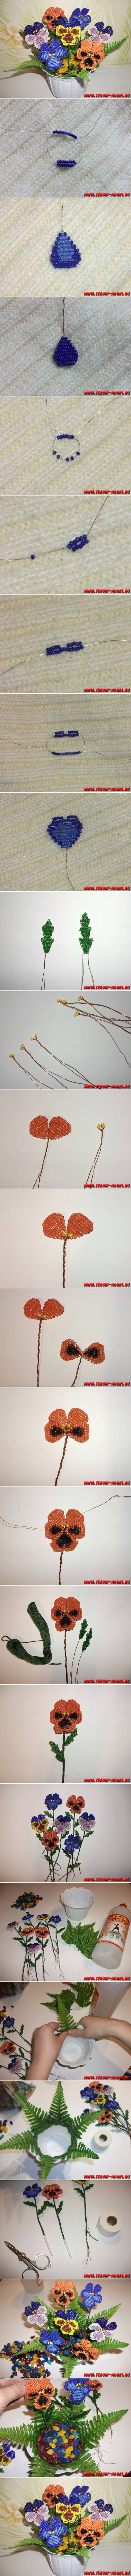 How to make Beads Pansy Flower step by step DIY instructions